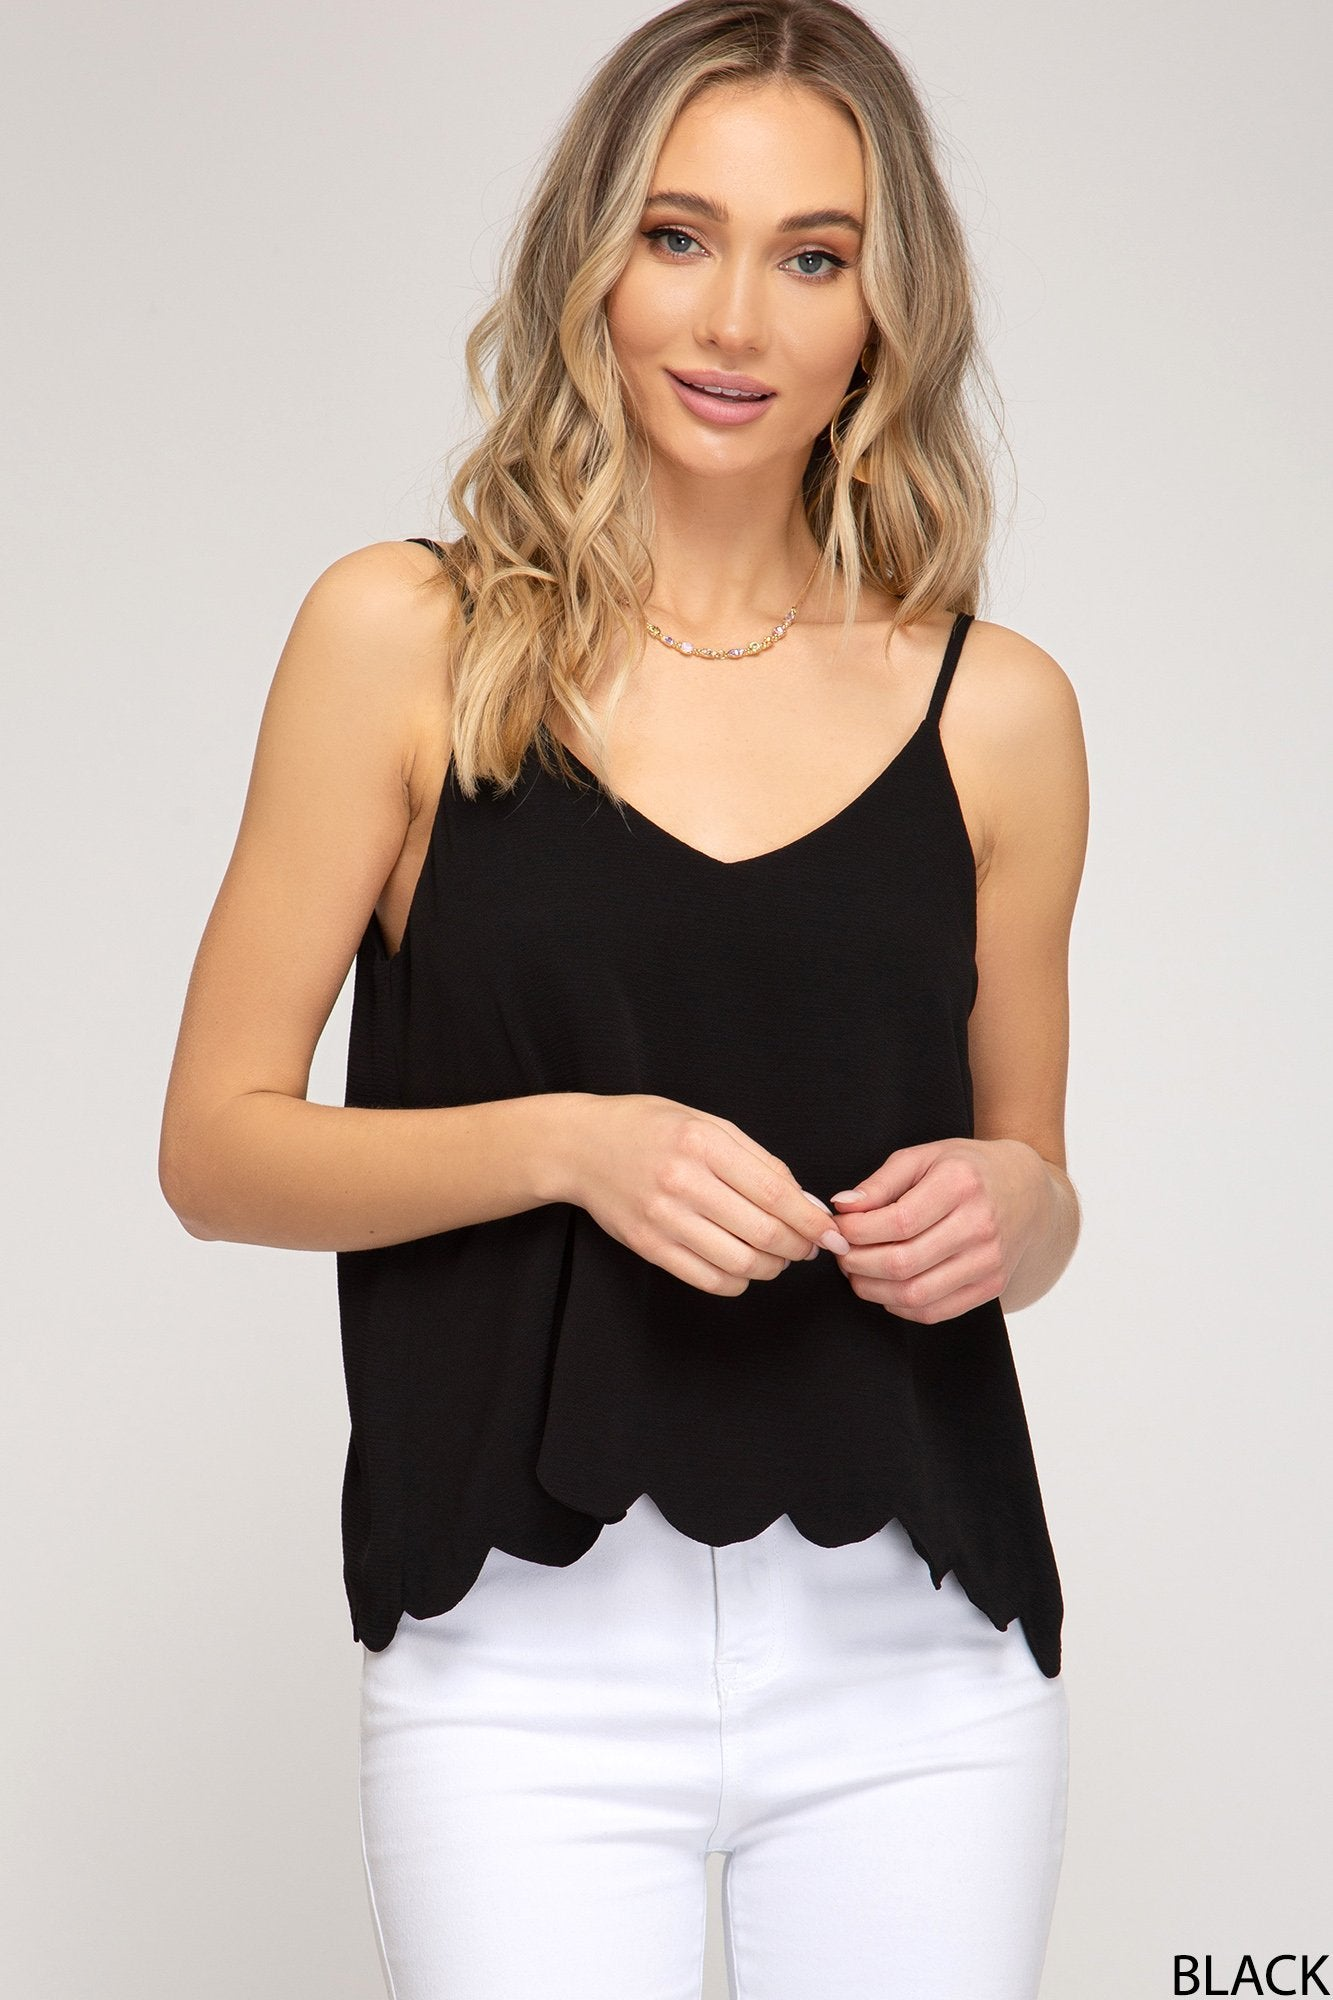 SHE AND SKY Women's Top BLACK / S She And Sky Woven Cami Top With Scalloped Hem || David's Clothing  SS3510